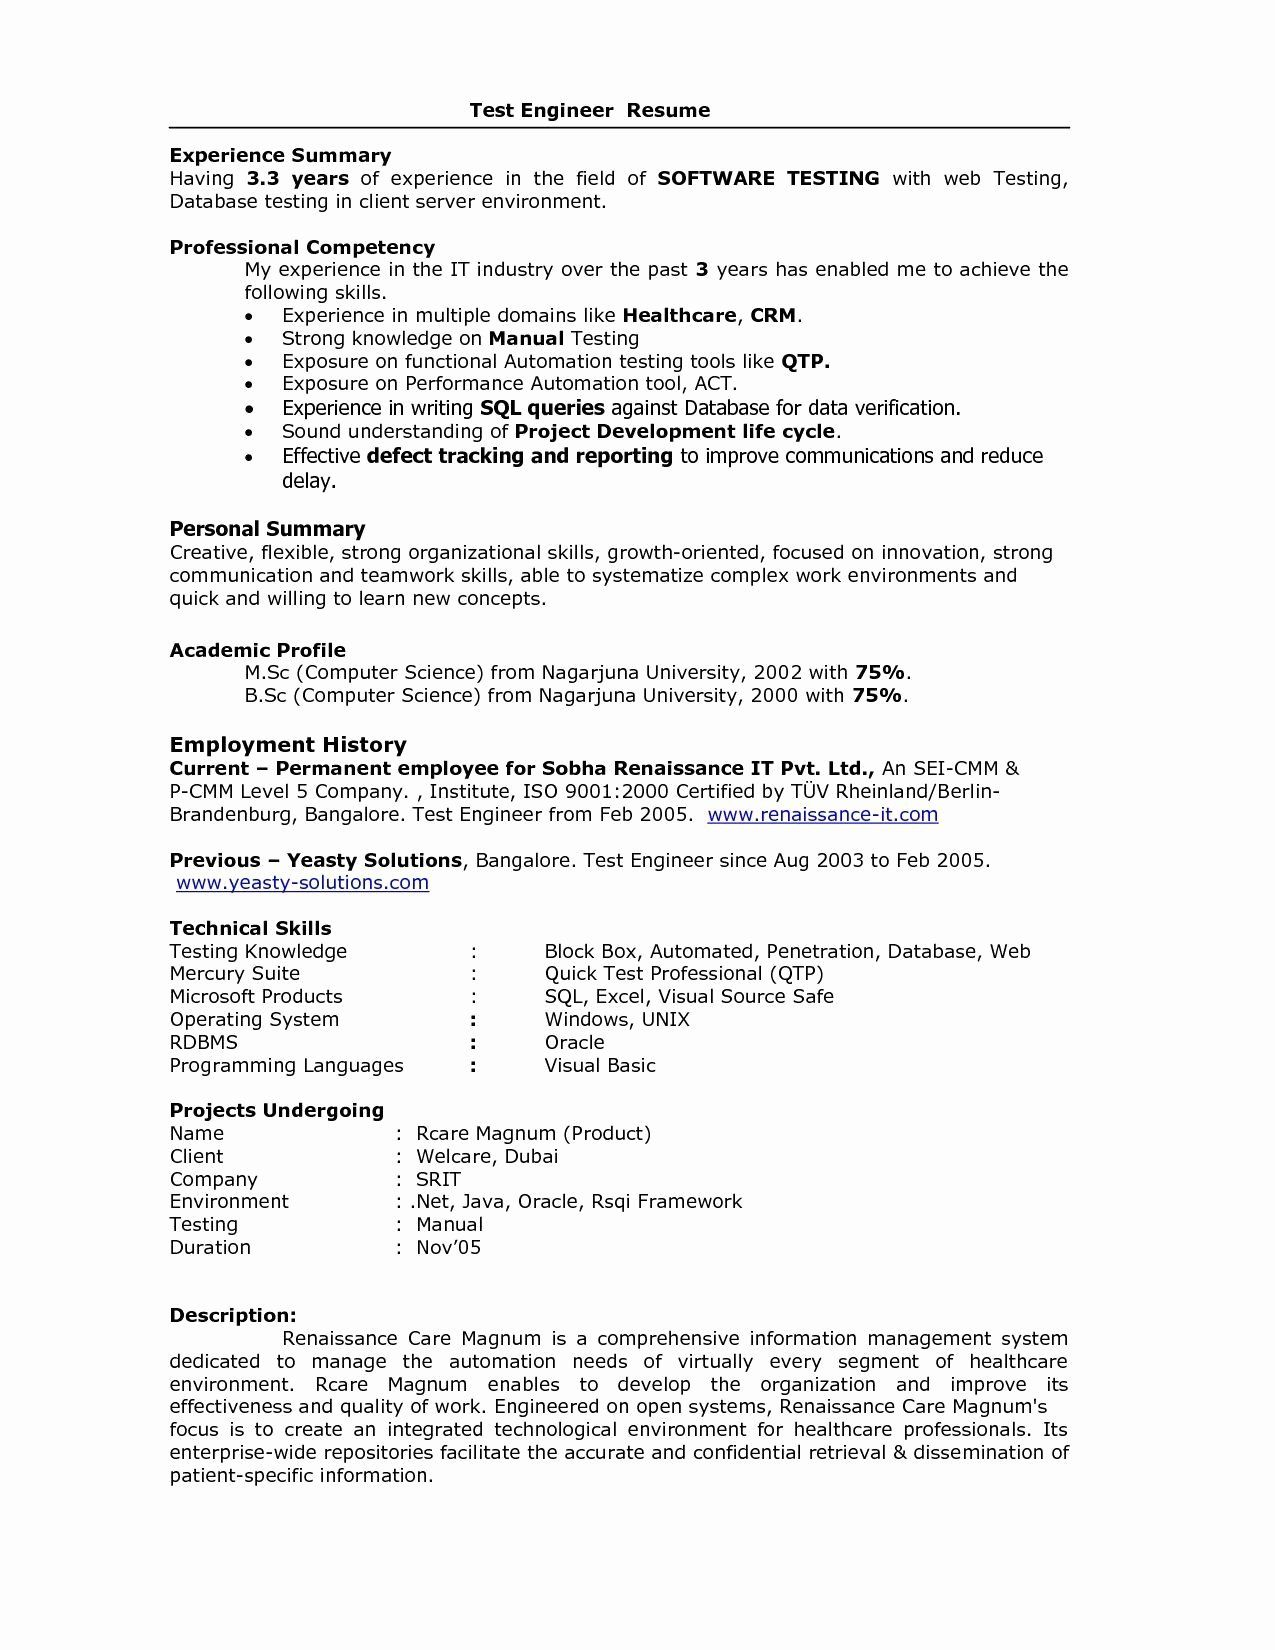 20 Qa Tester Resume With 5 Years Experience In 2020 Software Testing Resume No Experience Job Resume Samples